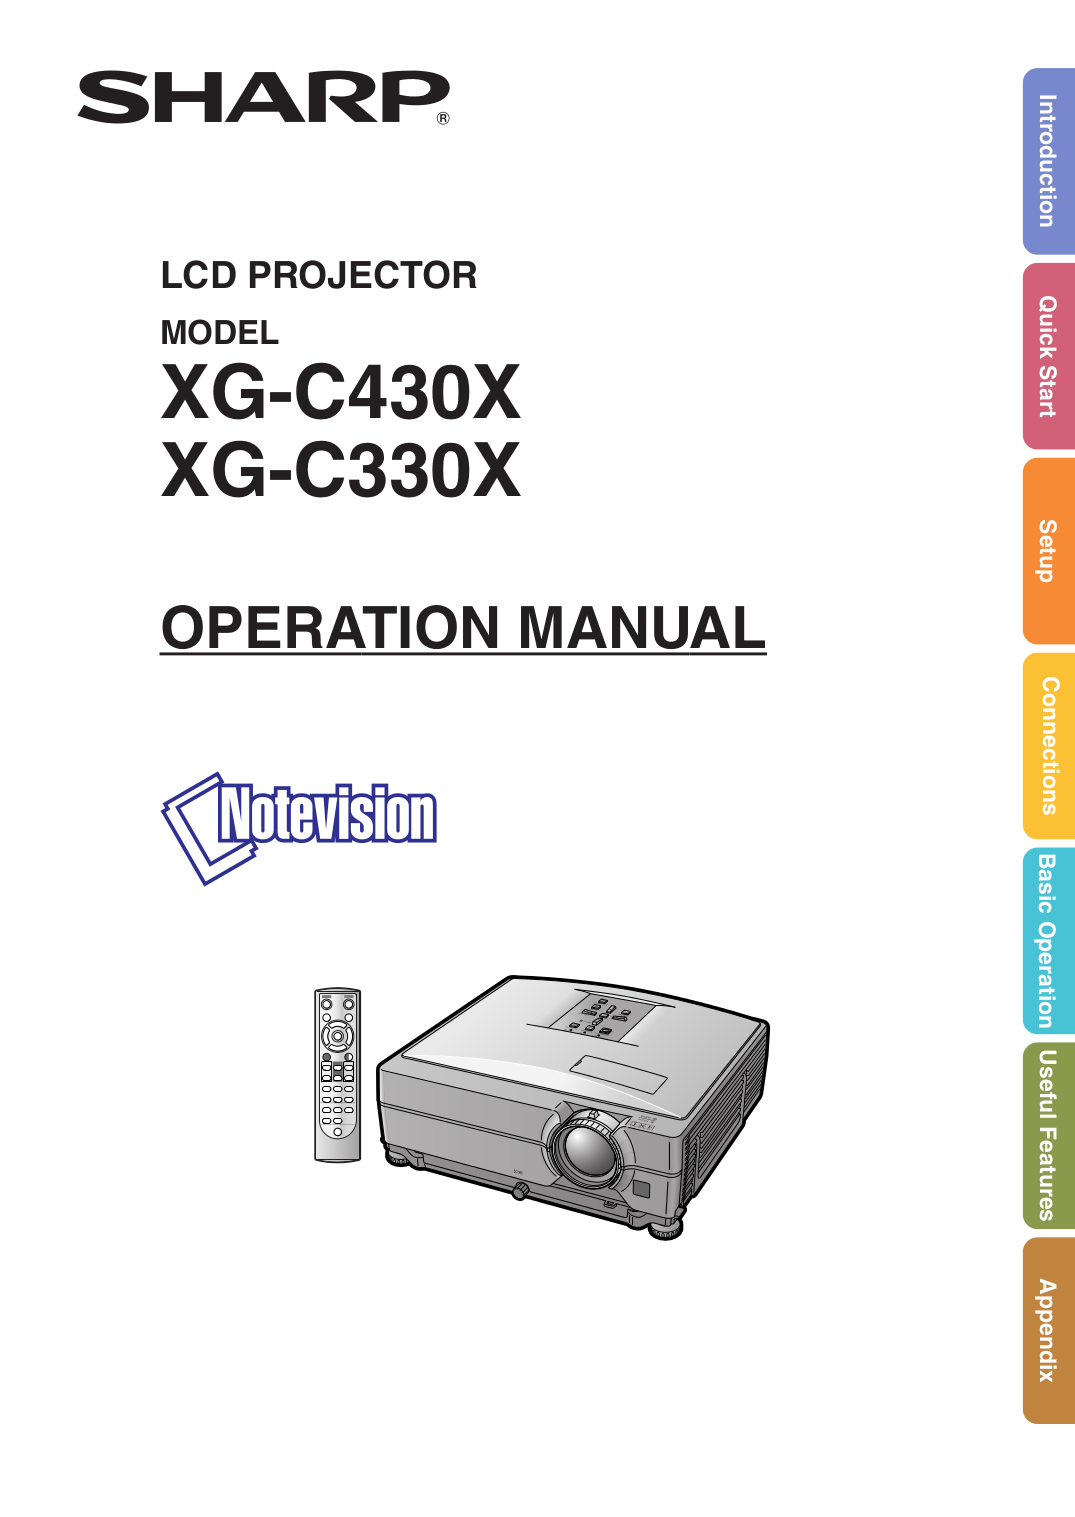 Download free pdf for sharp xg-c430x projector manual.